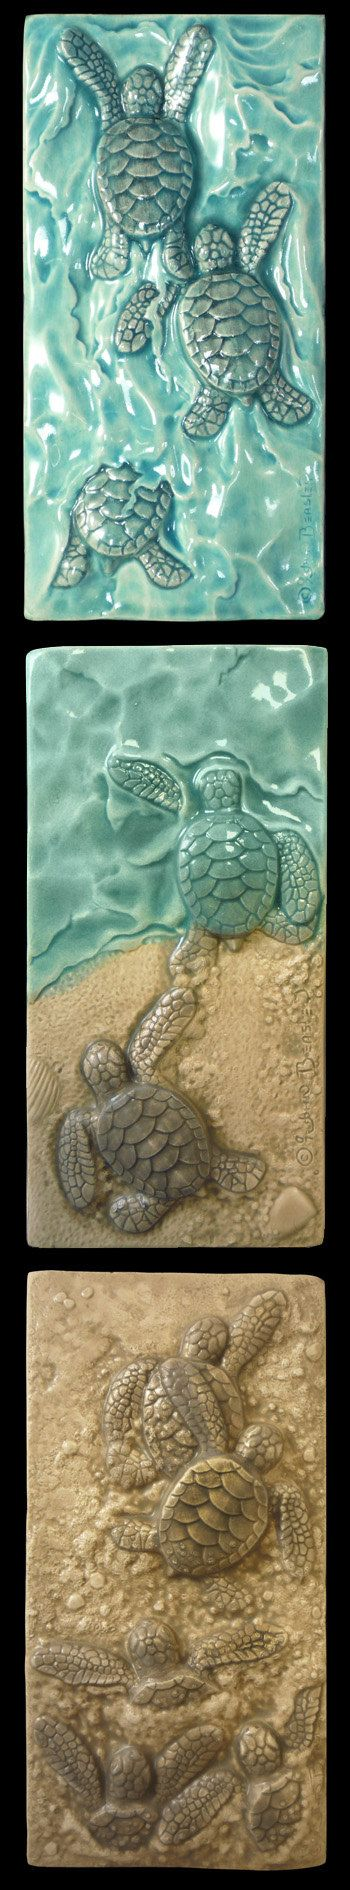 Baby Green Sea Turtles Triptych sold as set of three individual tiles only.  Each tile is 3 in. by 6 in. Each has a cavity in the back for